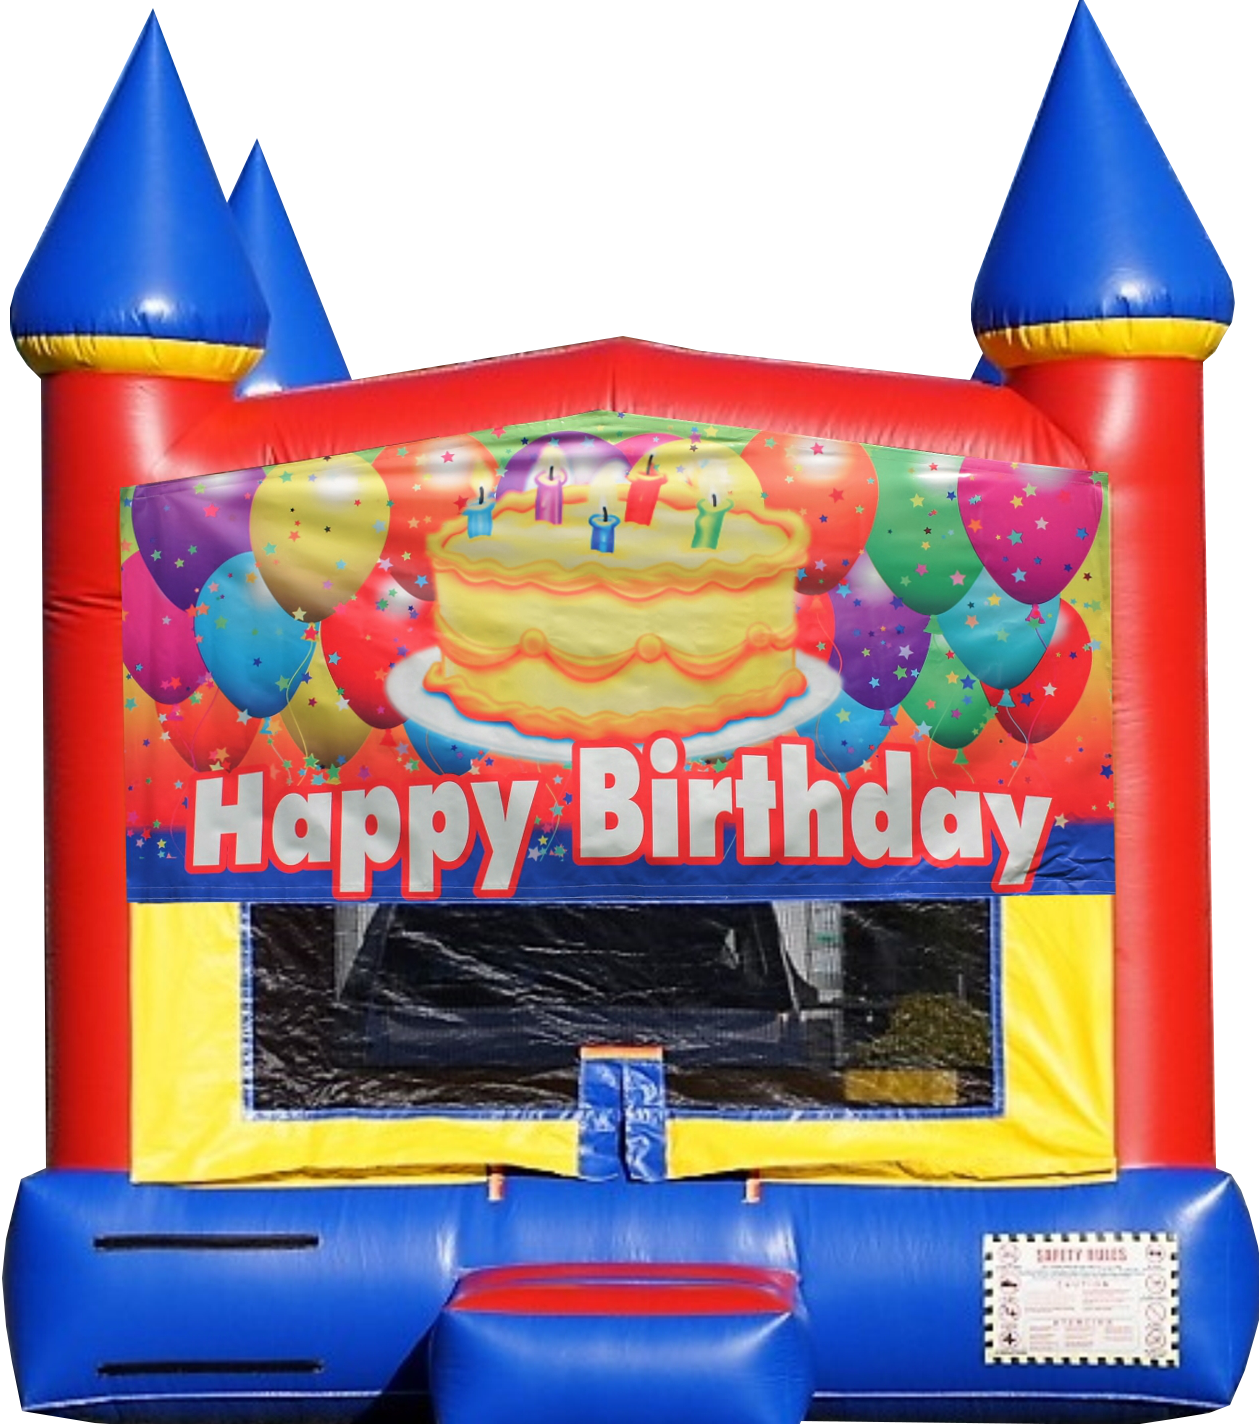 Happy birthday bounce house rental Murfreesboro